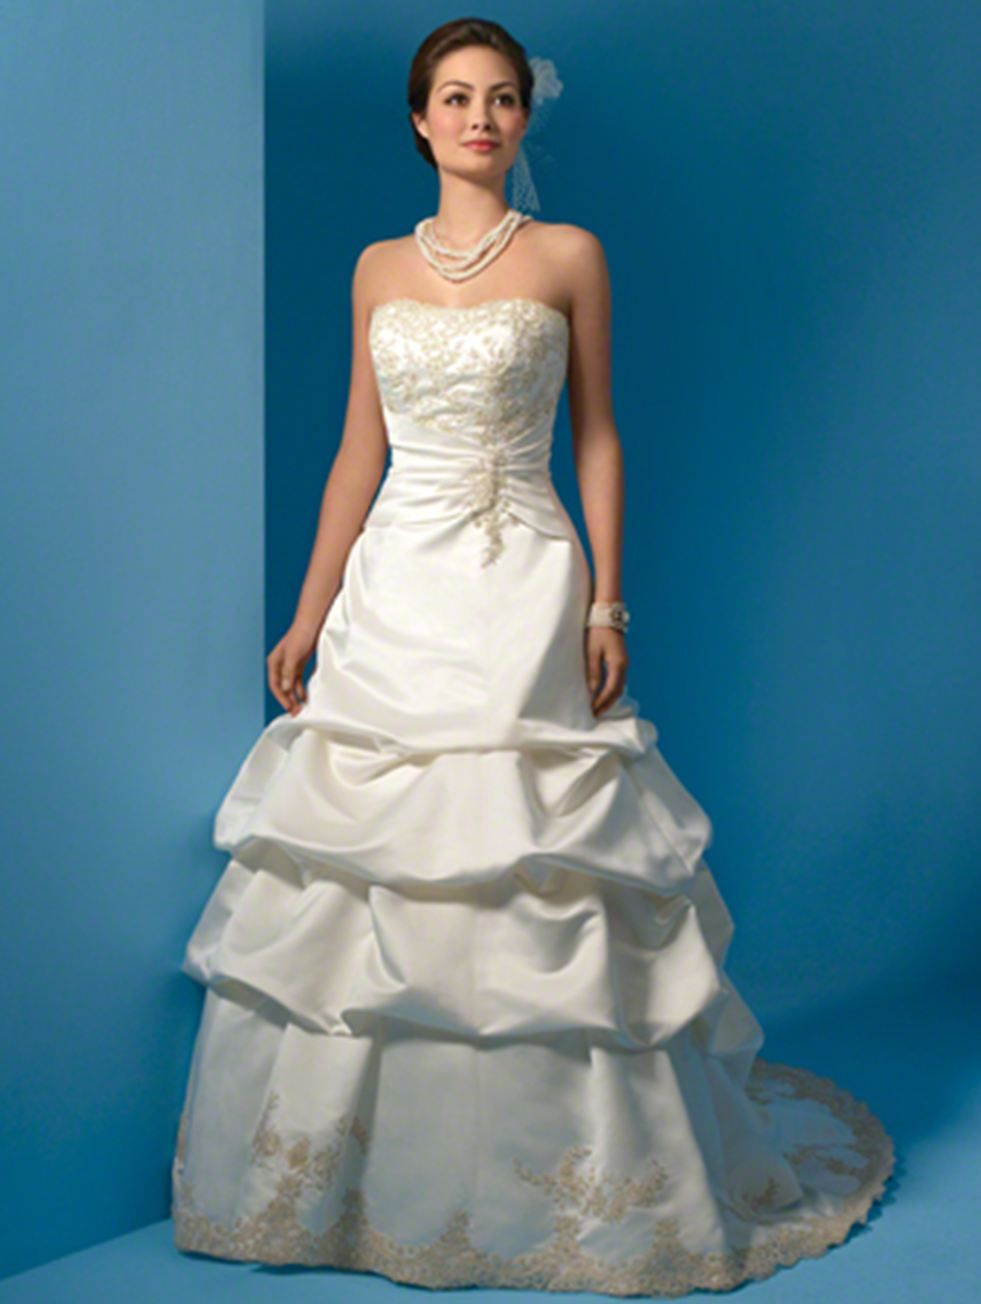 Alfred Angelo 2008 Bridal Gown | My dream wedding | Pinterest ...